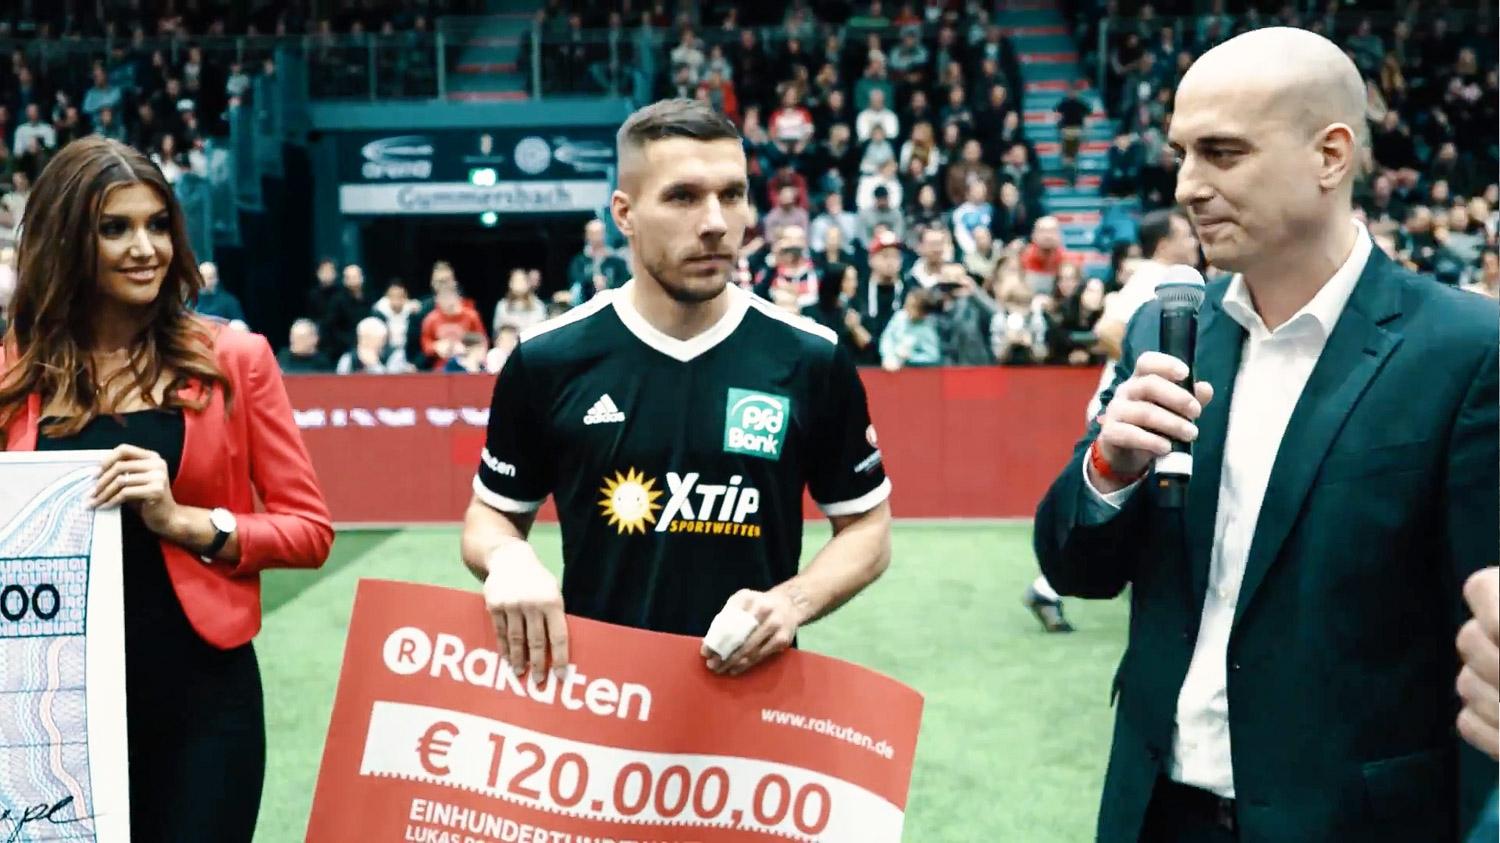 During a charity football match organized by Lukas Podolski, Rakuten, who also acted as platinum sponsor of the cup, made a very special appearance.